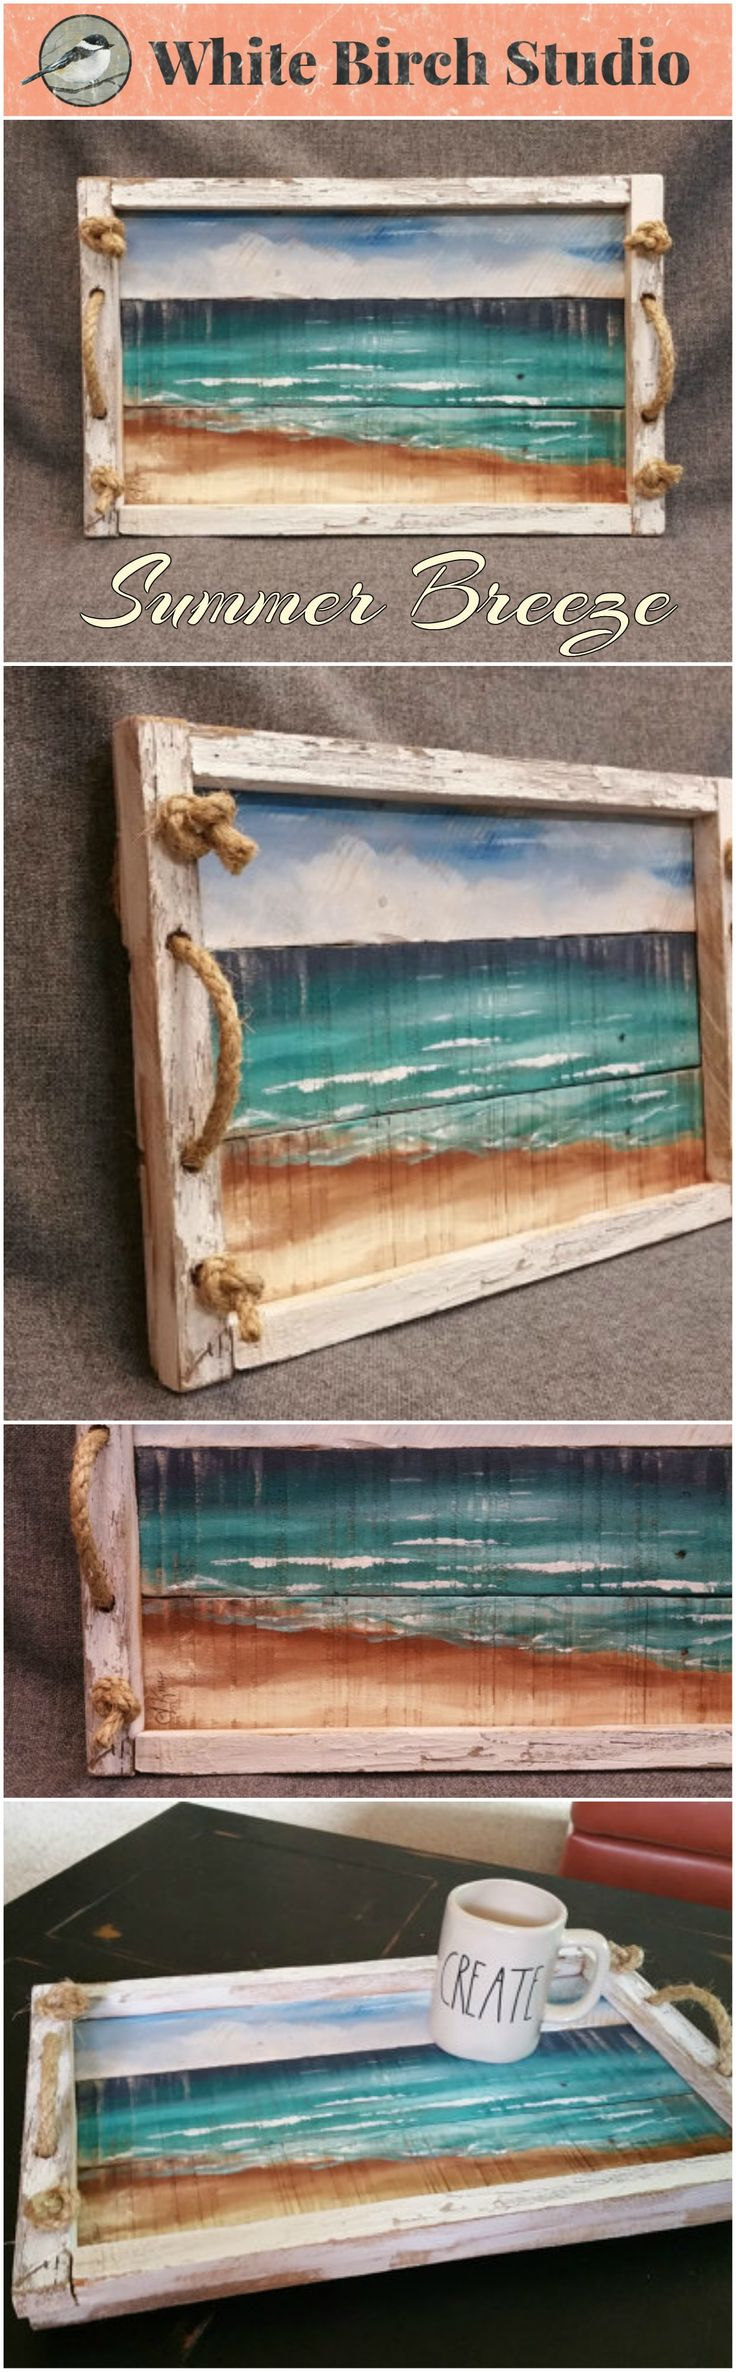 Decorative tray, Beach decor, Barn wood Serving Tray, Summer Breeze table tray, Beach, rope handles, distressed upcycled pallet wood  This unique piece is 19 in x 12 in.   Are you looking for a unique, personal BEACH touch for your summer decorating at home or your cottage? This tray will look great on your coffee table or front porch.